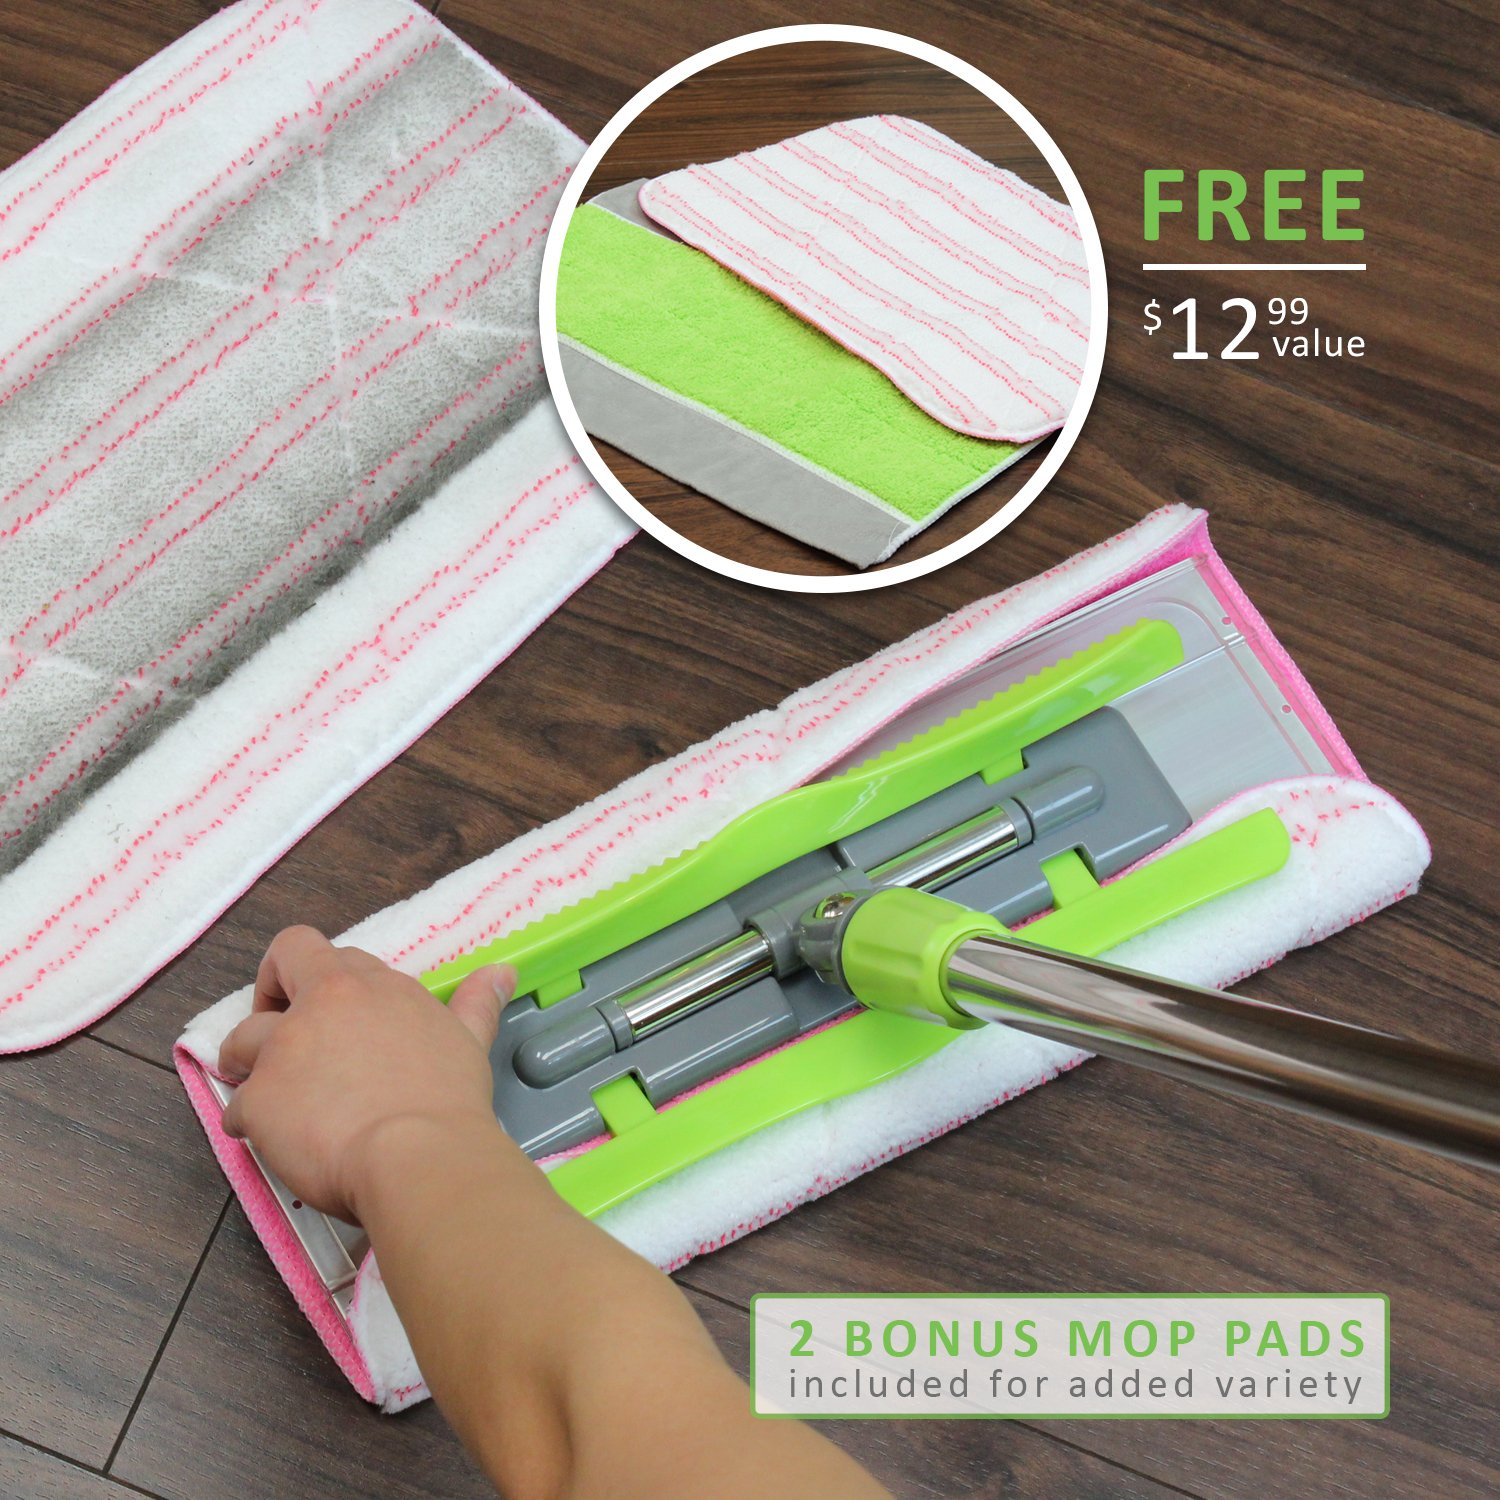 LINKYO Microfiber Hardwood Floor Mop - 3 Reusable Flat Mop Pads and Extension Included, for Wet or Dry Floor Cleaning by LINKYO (Image #7)